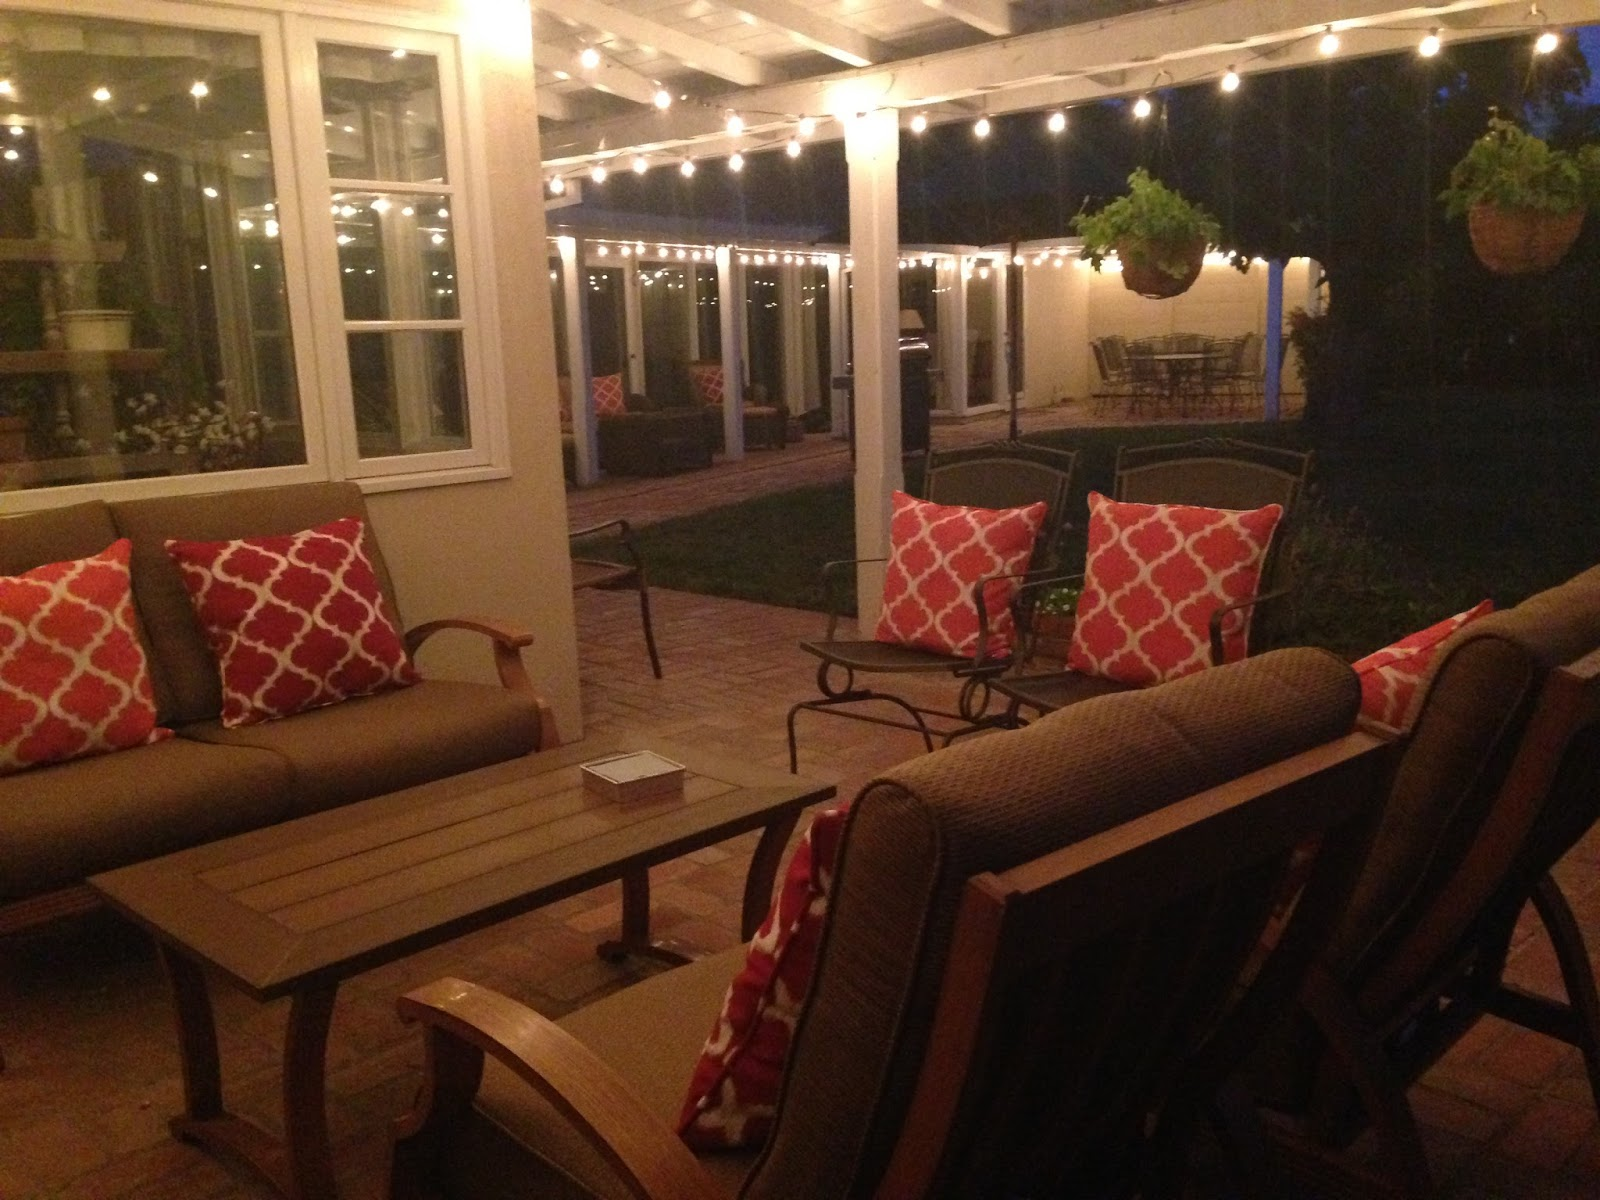 In One Afternoon My Son And Husband Strung 200 Feet Of Cafe Lights On Our  Back Patio. Iu0027m Amazed At Not Only How Well They Illuminate, But The Lights  Add ...